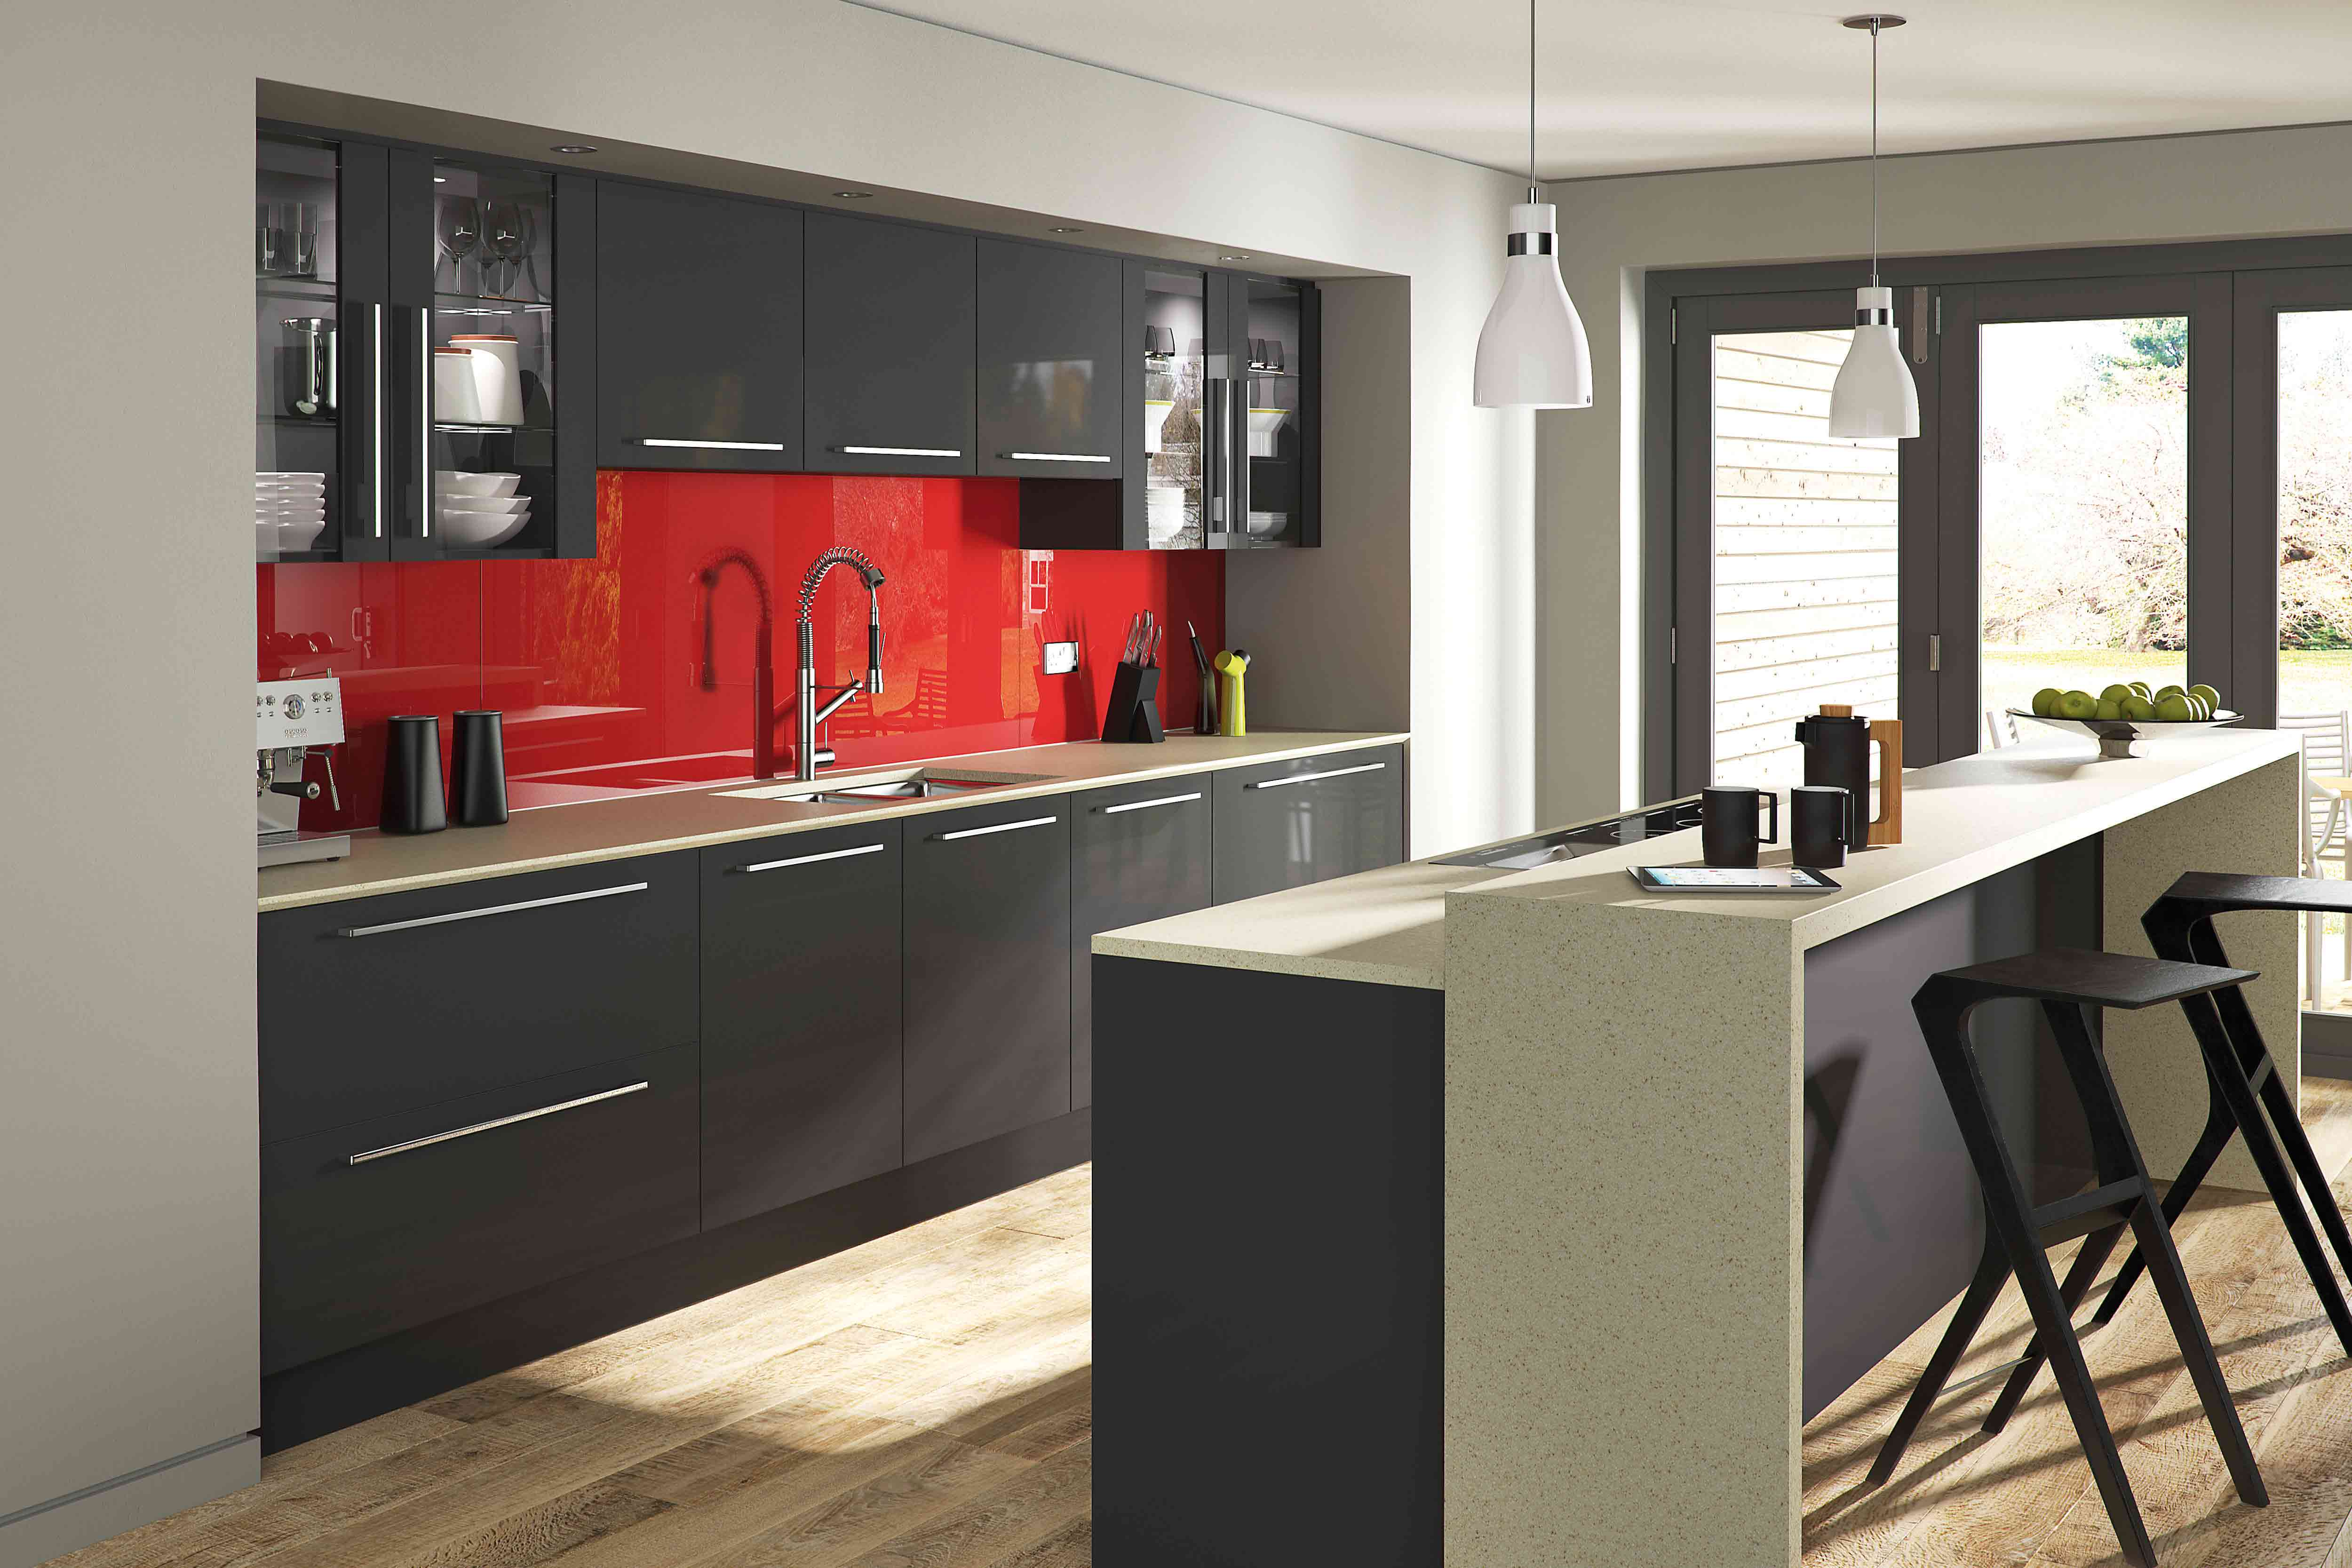 Aspen  High Gloss Acrylic  Pebble Kitchens